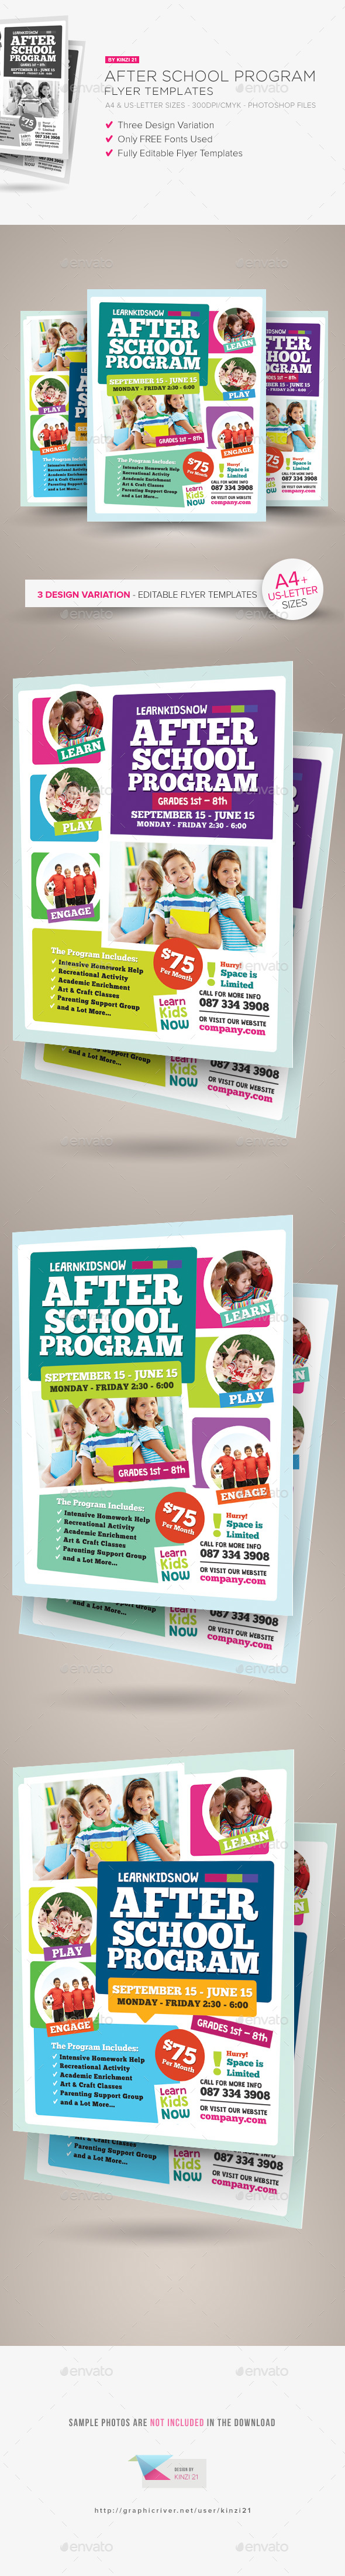 After School Program Flyer Templates - Corporate Flyers